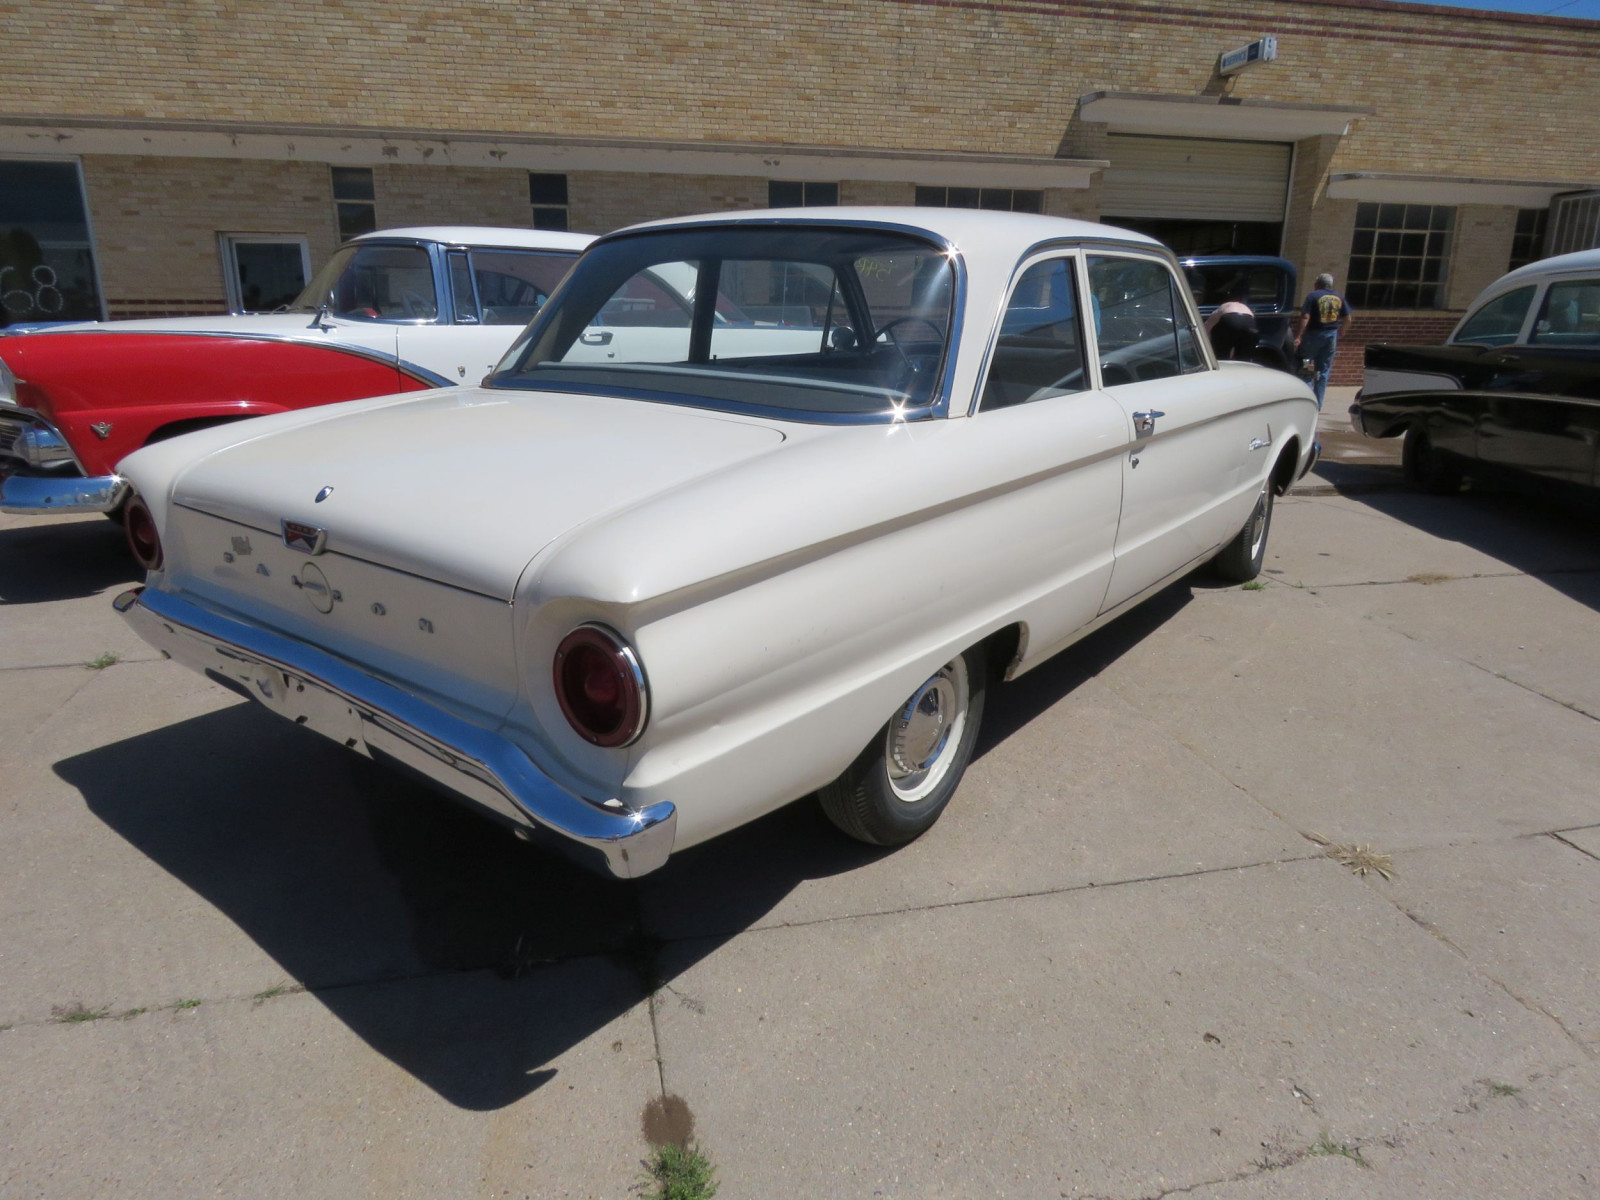 1961 FORD FALCON 2DR SEDAN LESS THAN 10,000 MILES - Image 7